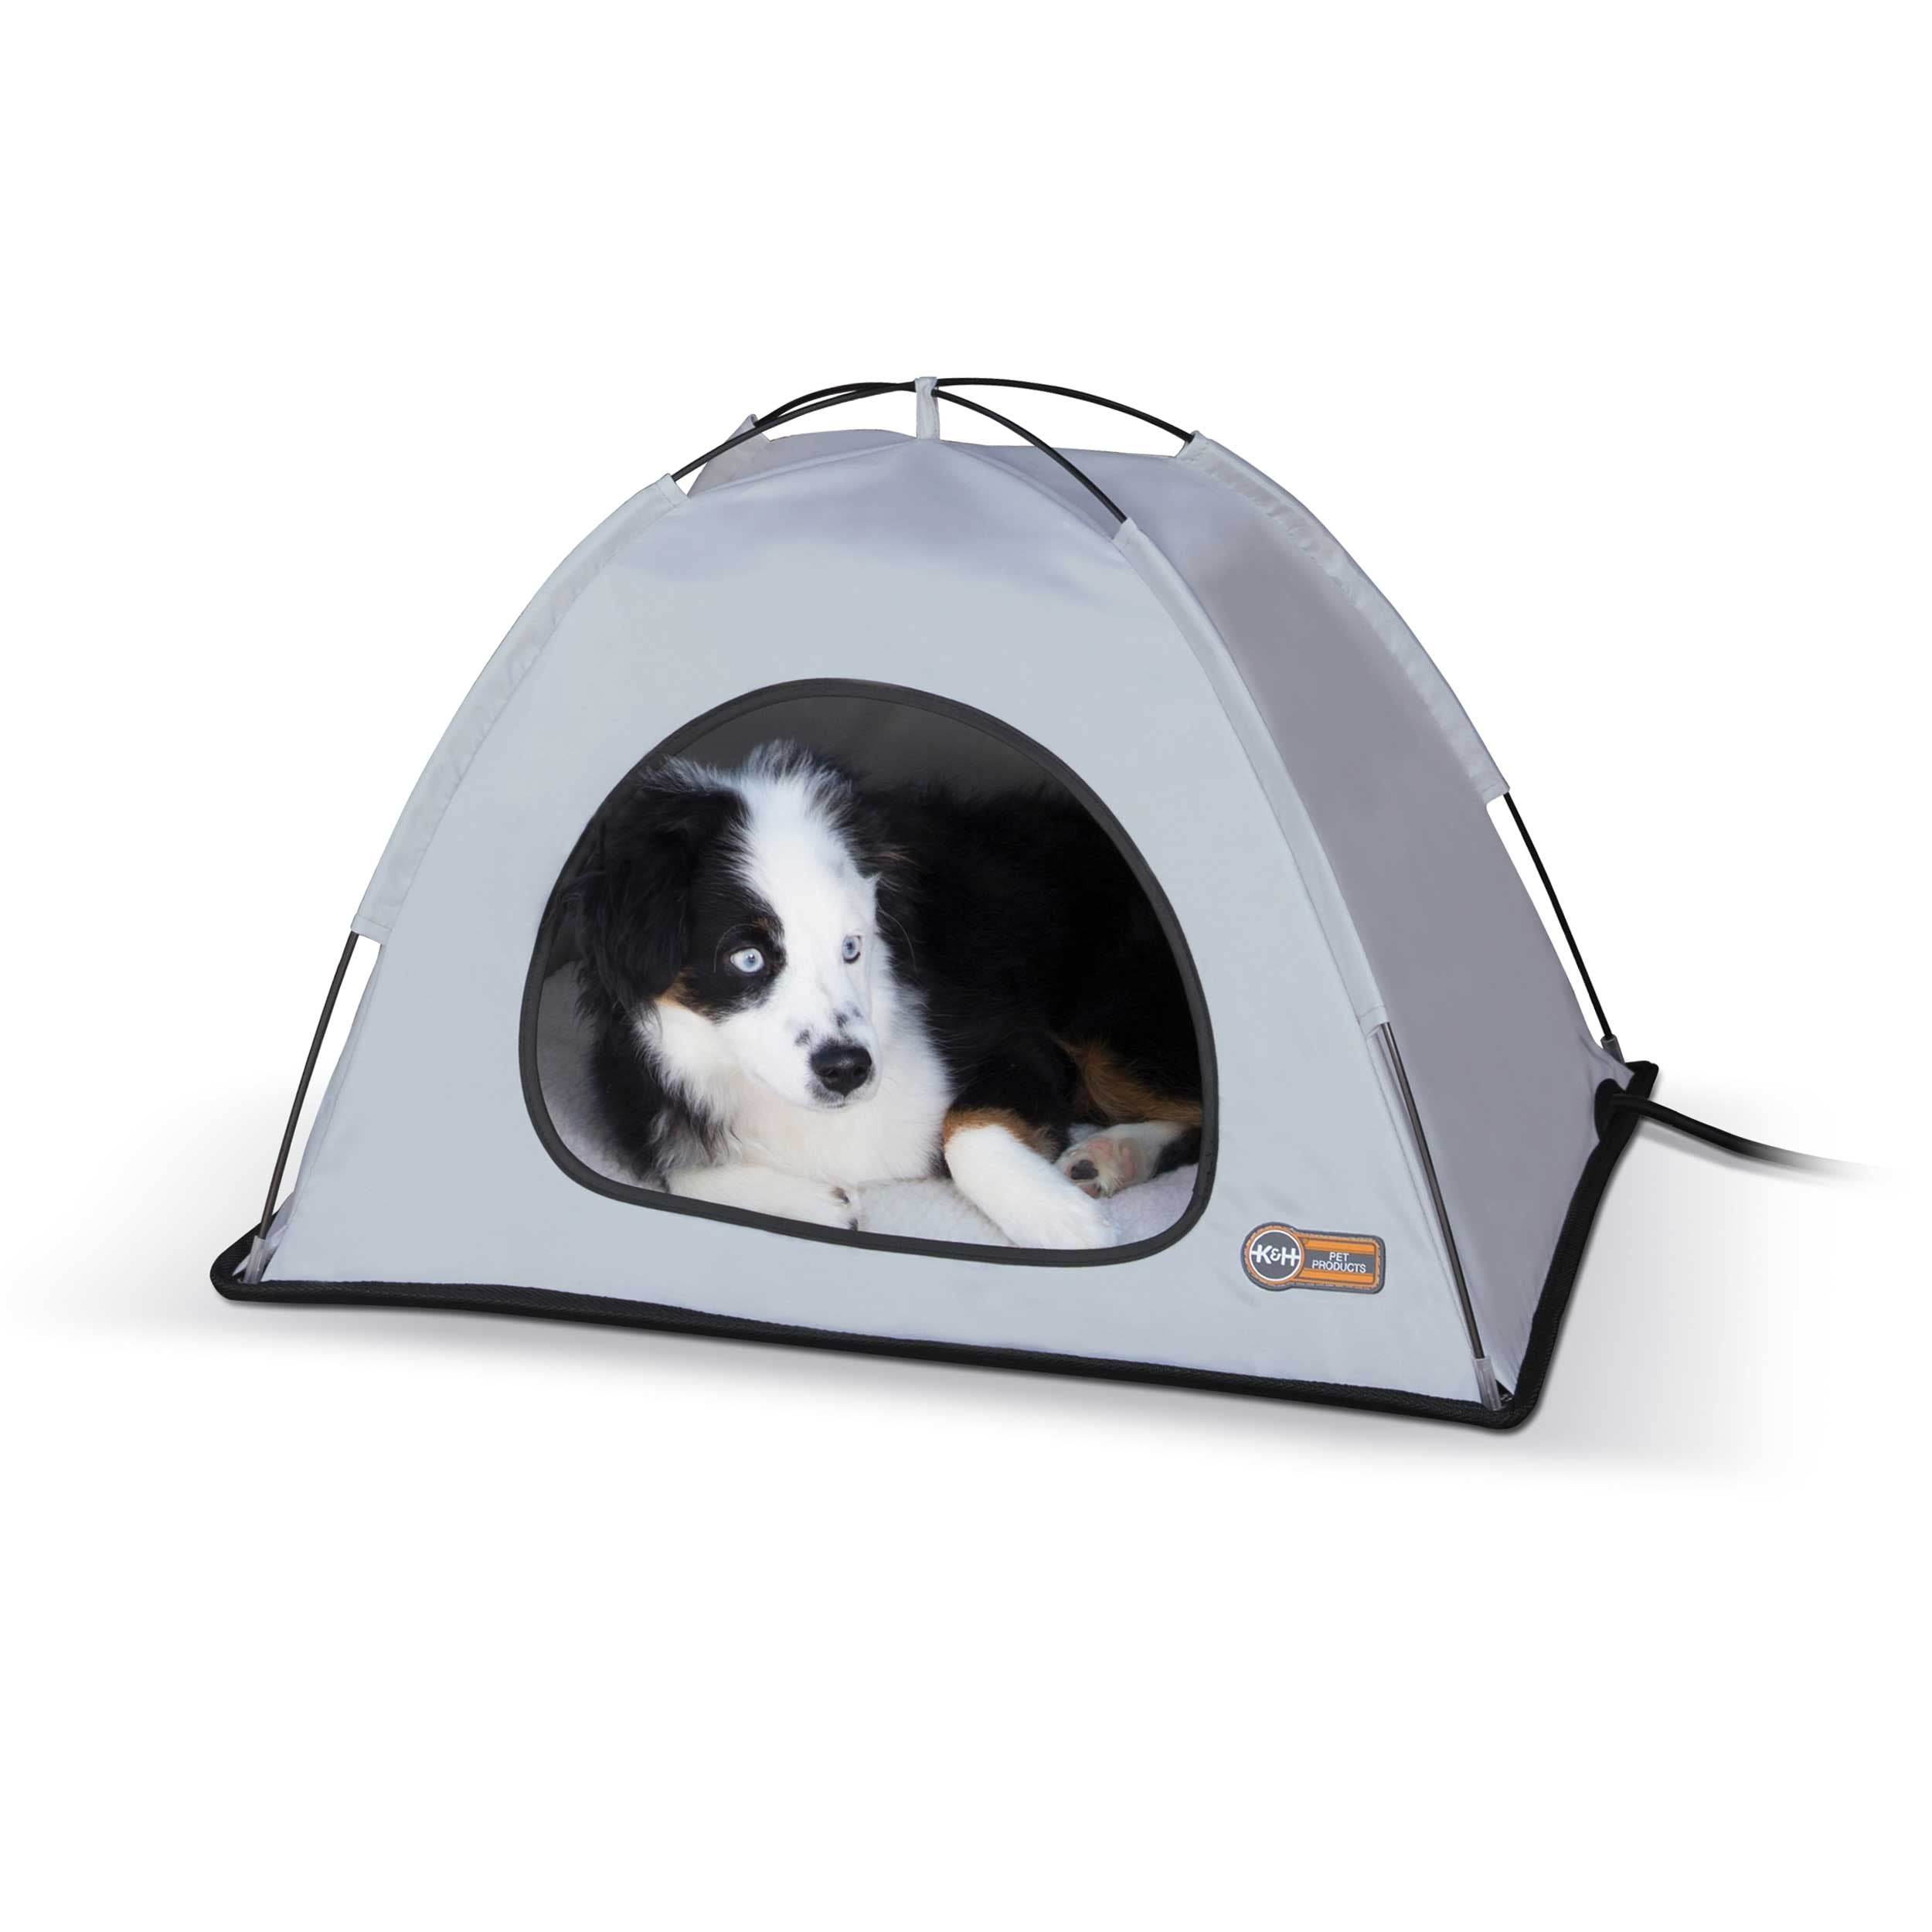 "K&H Pet Products Pet Thermo Tent Medium Gray 26.5"" x 30.5"" x 14"""